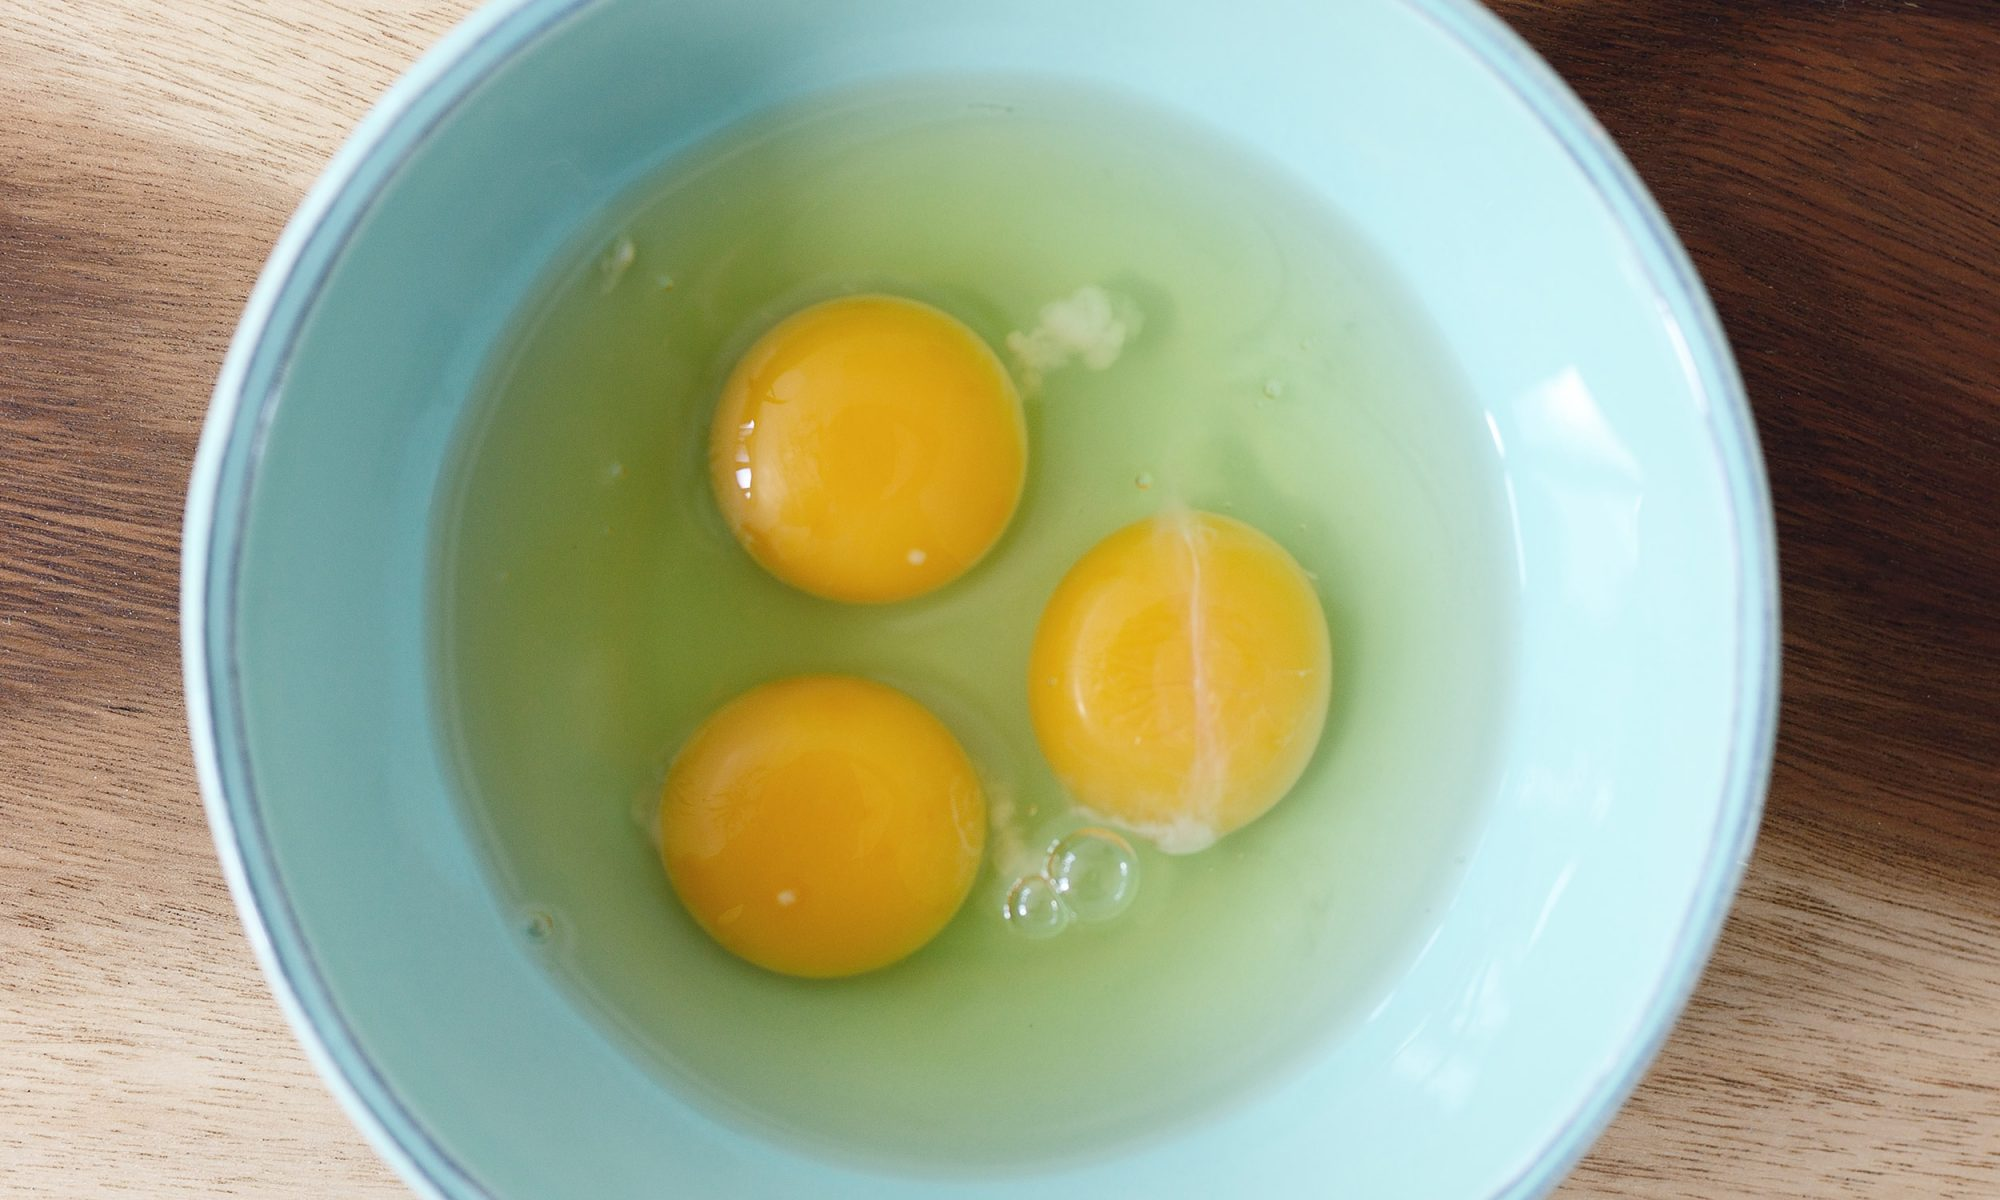 What's That Stringy White Thing in Raw Eggs? | MyRecipes